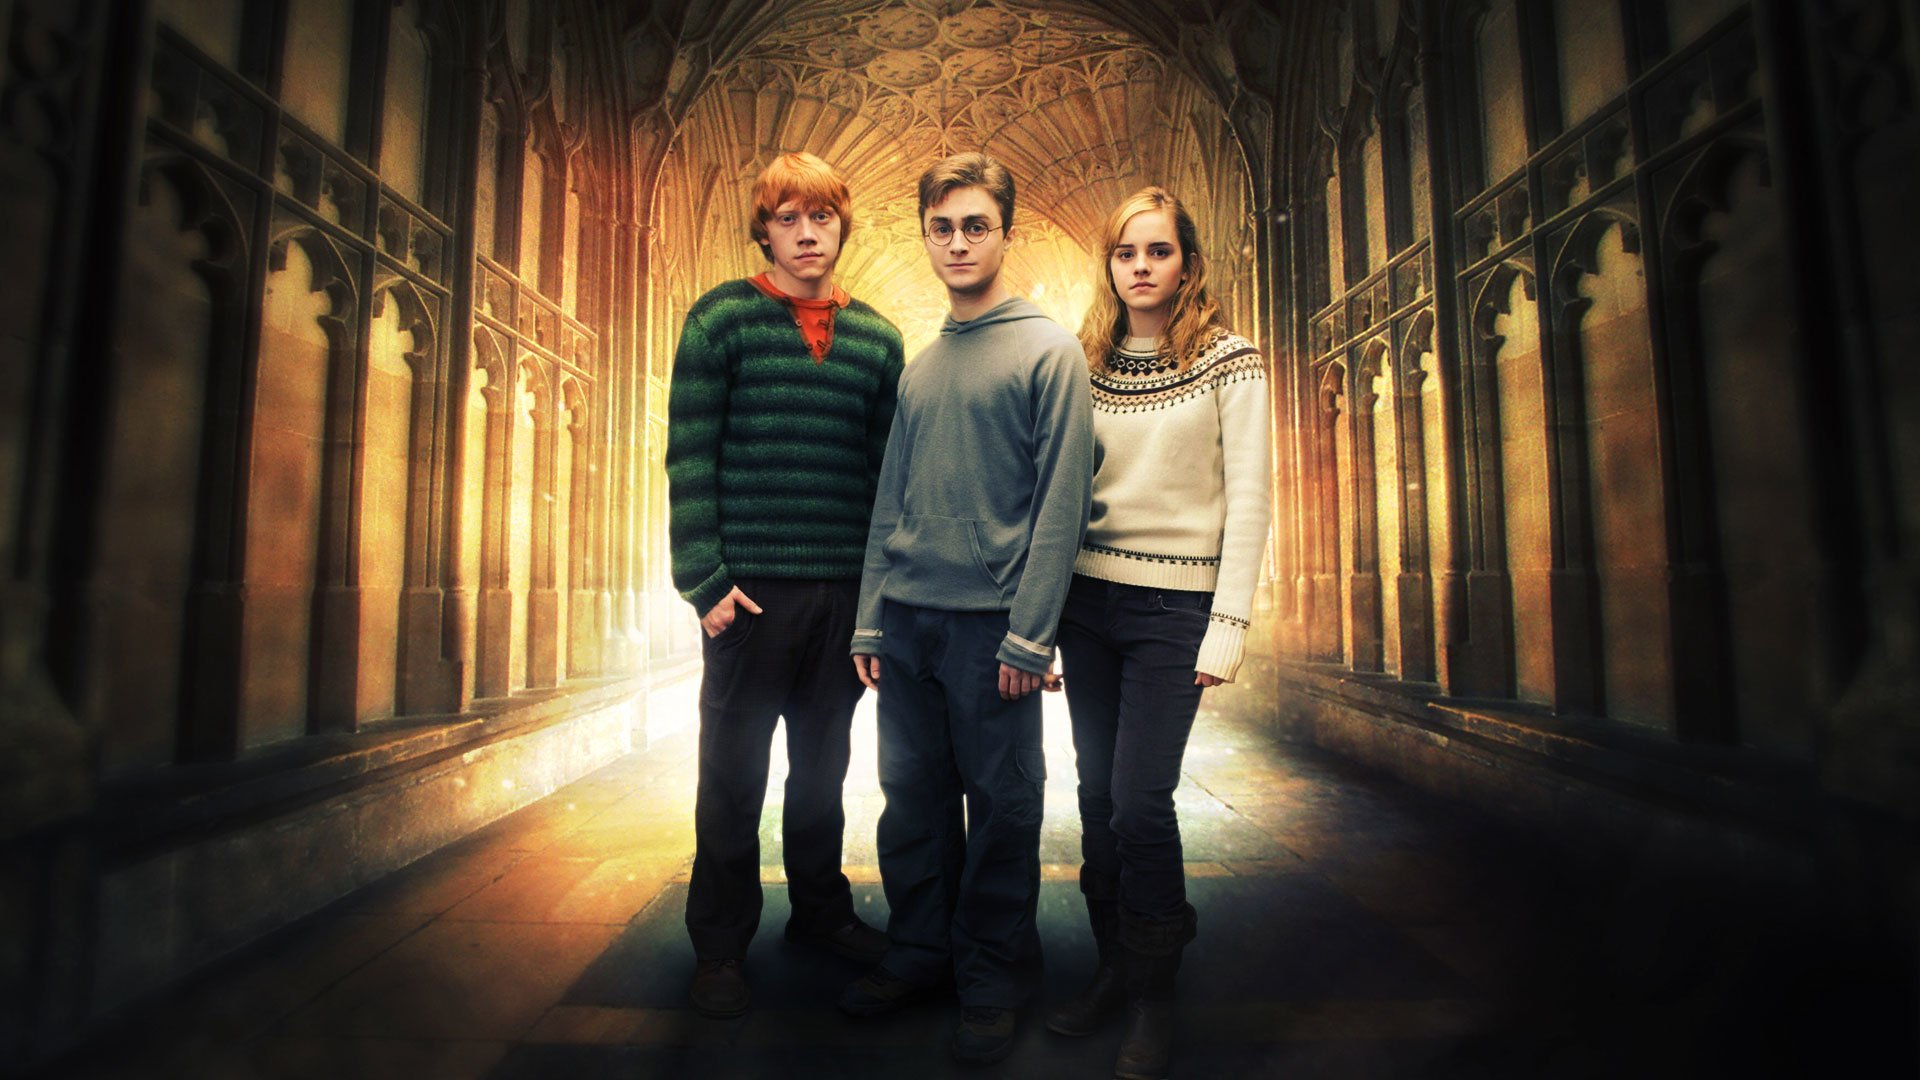 Wallpaper Harry Potter Iphone Harry Potter Hd Wallpaper Background Image 1920x1080